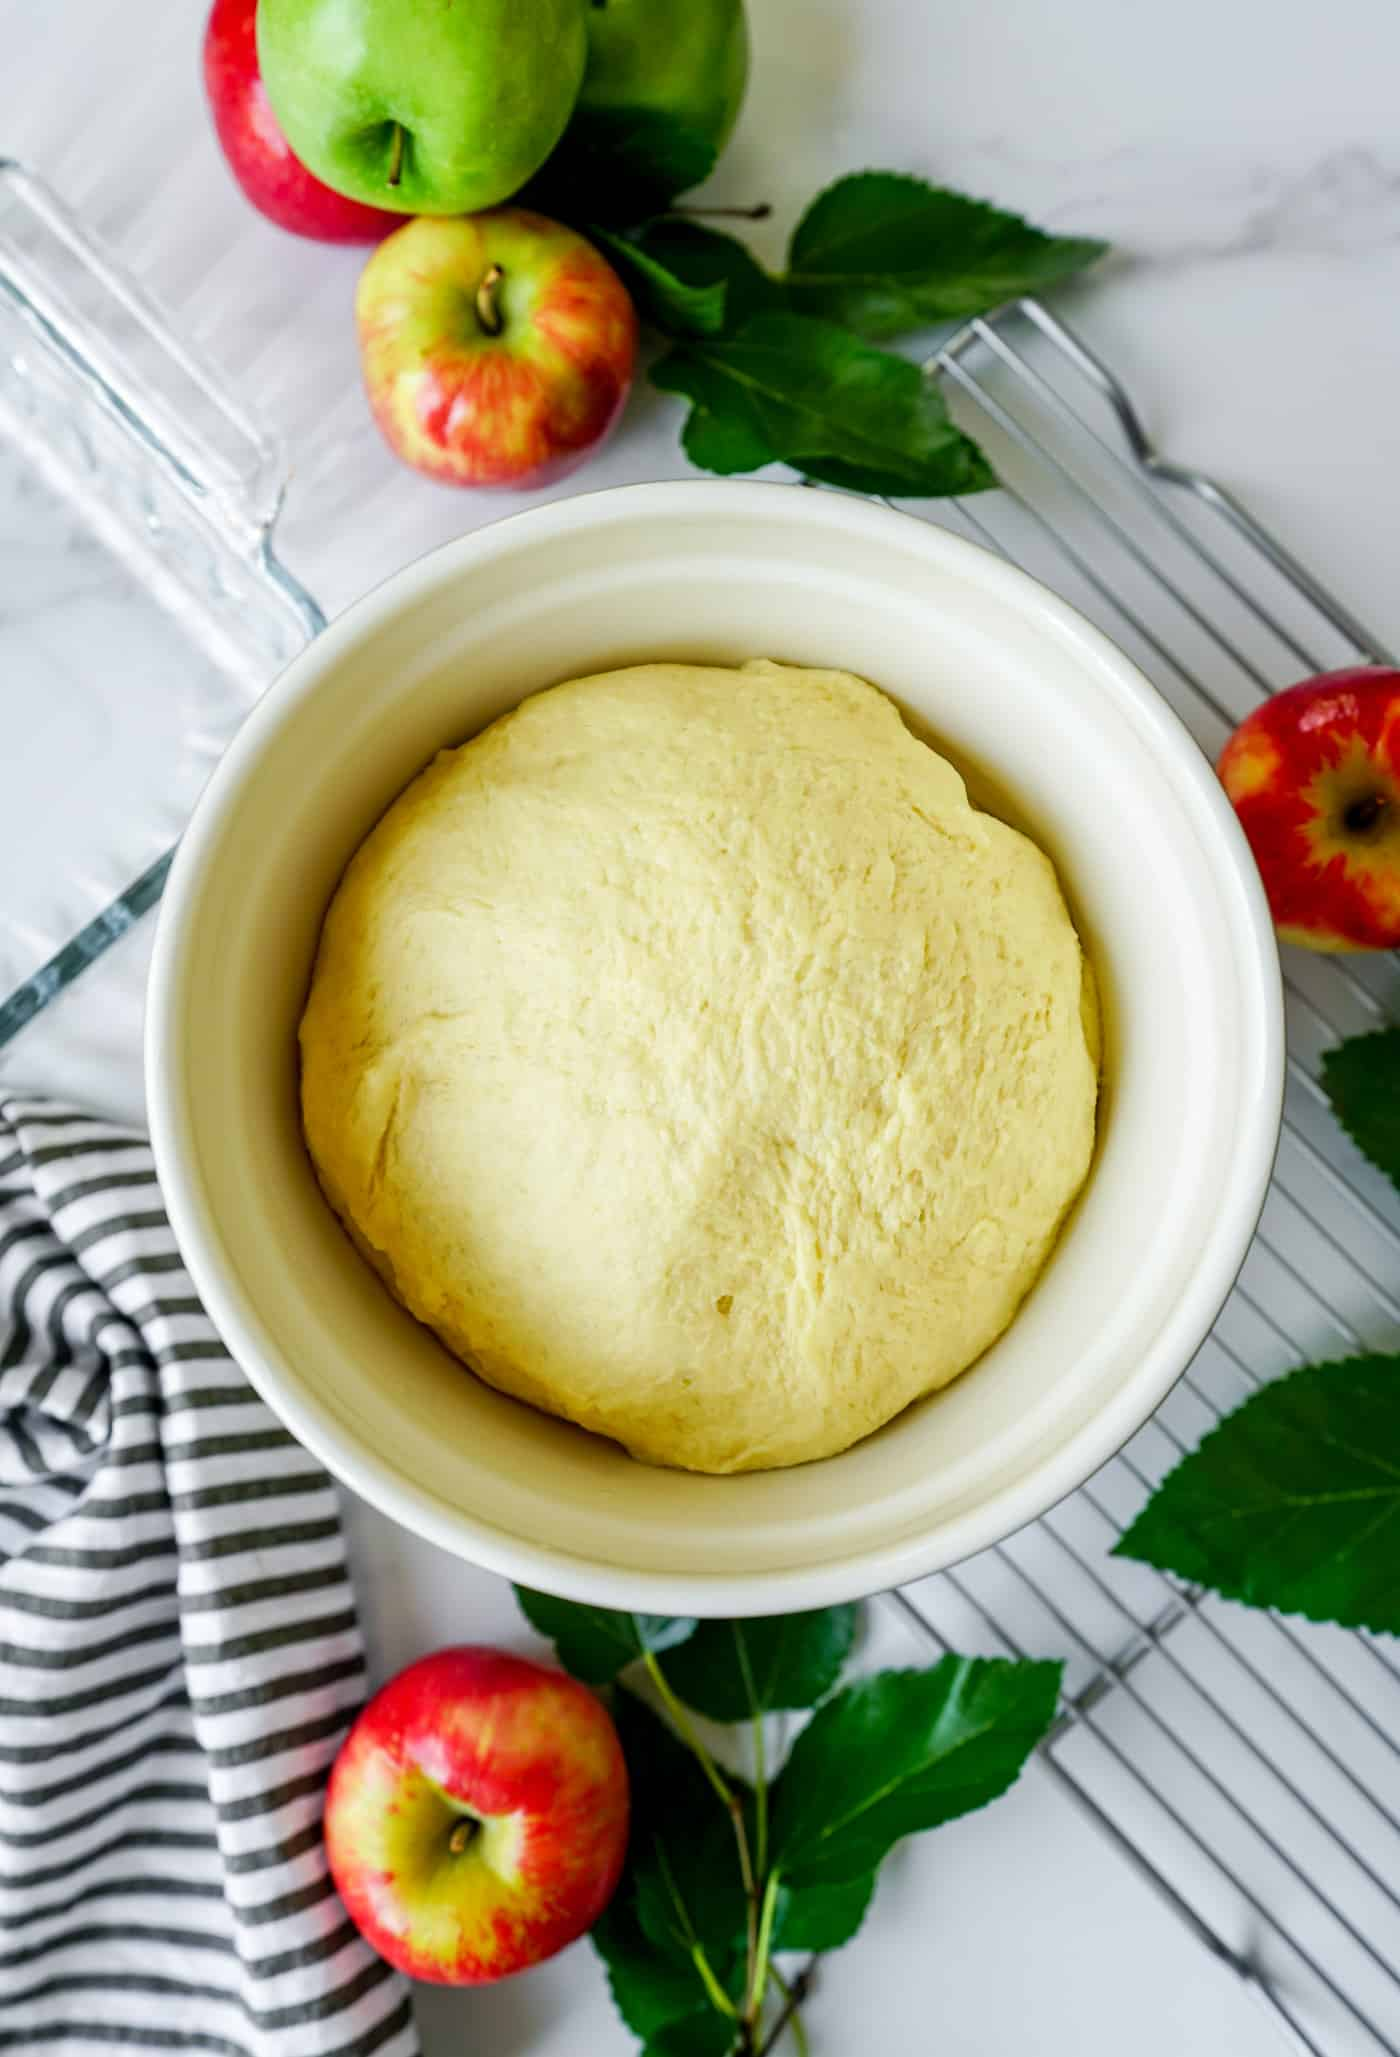 A large mixing bowl filled with homemade dough which has risen for homemade cinnamon rolls.